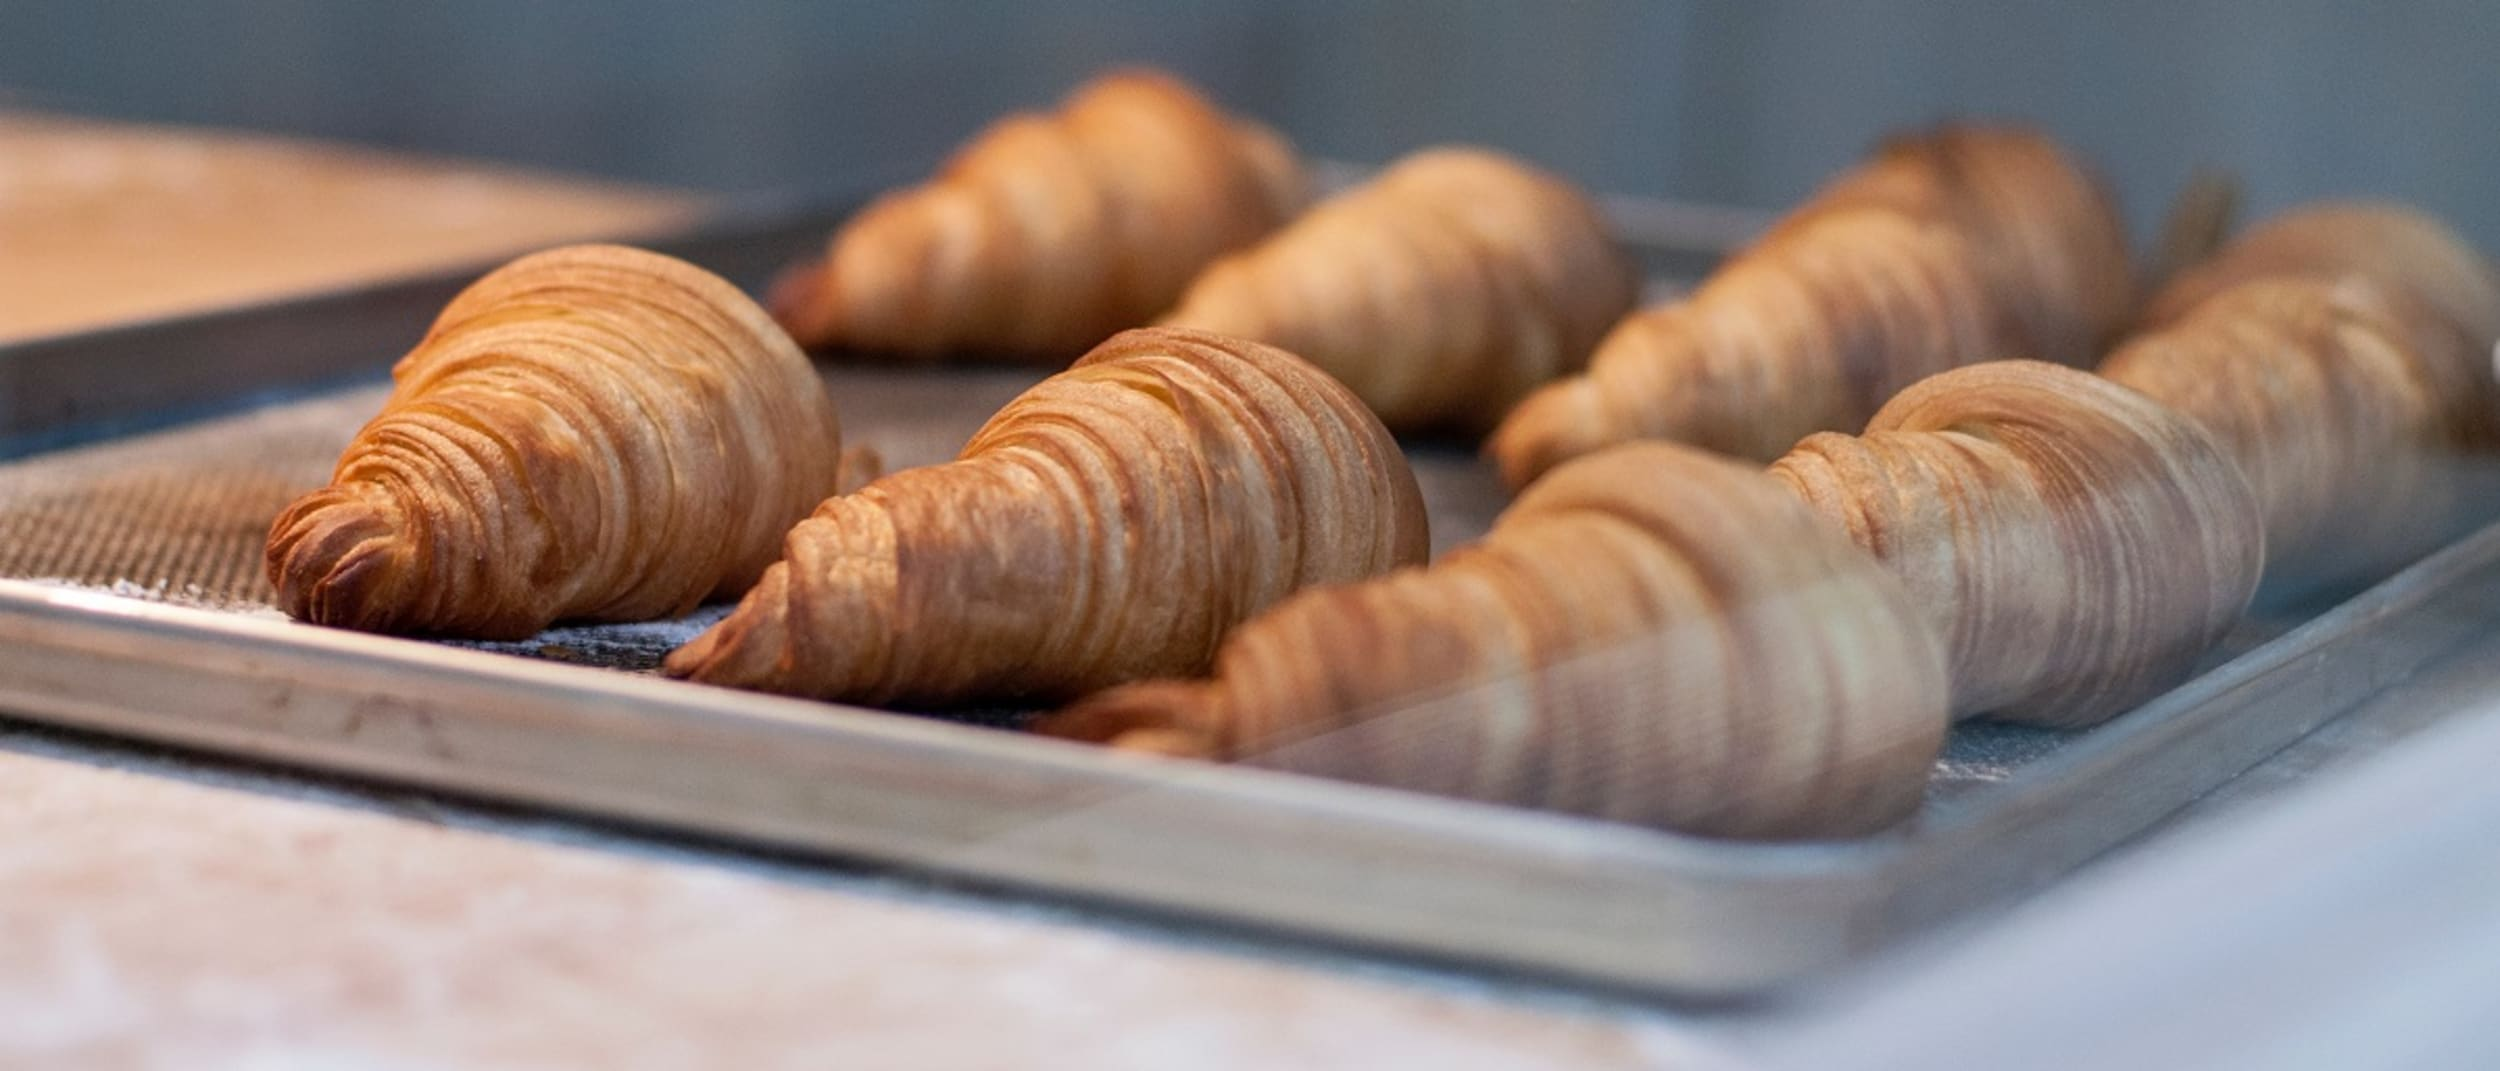 Le Bon Choix: traditional French pastries from $2.90